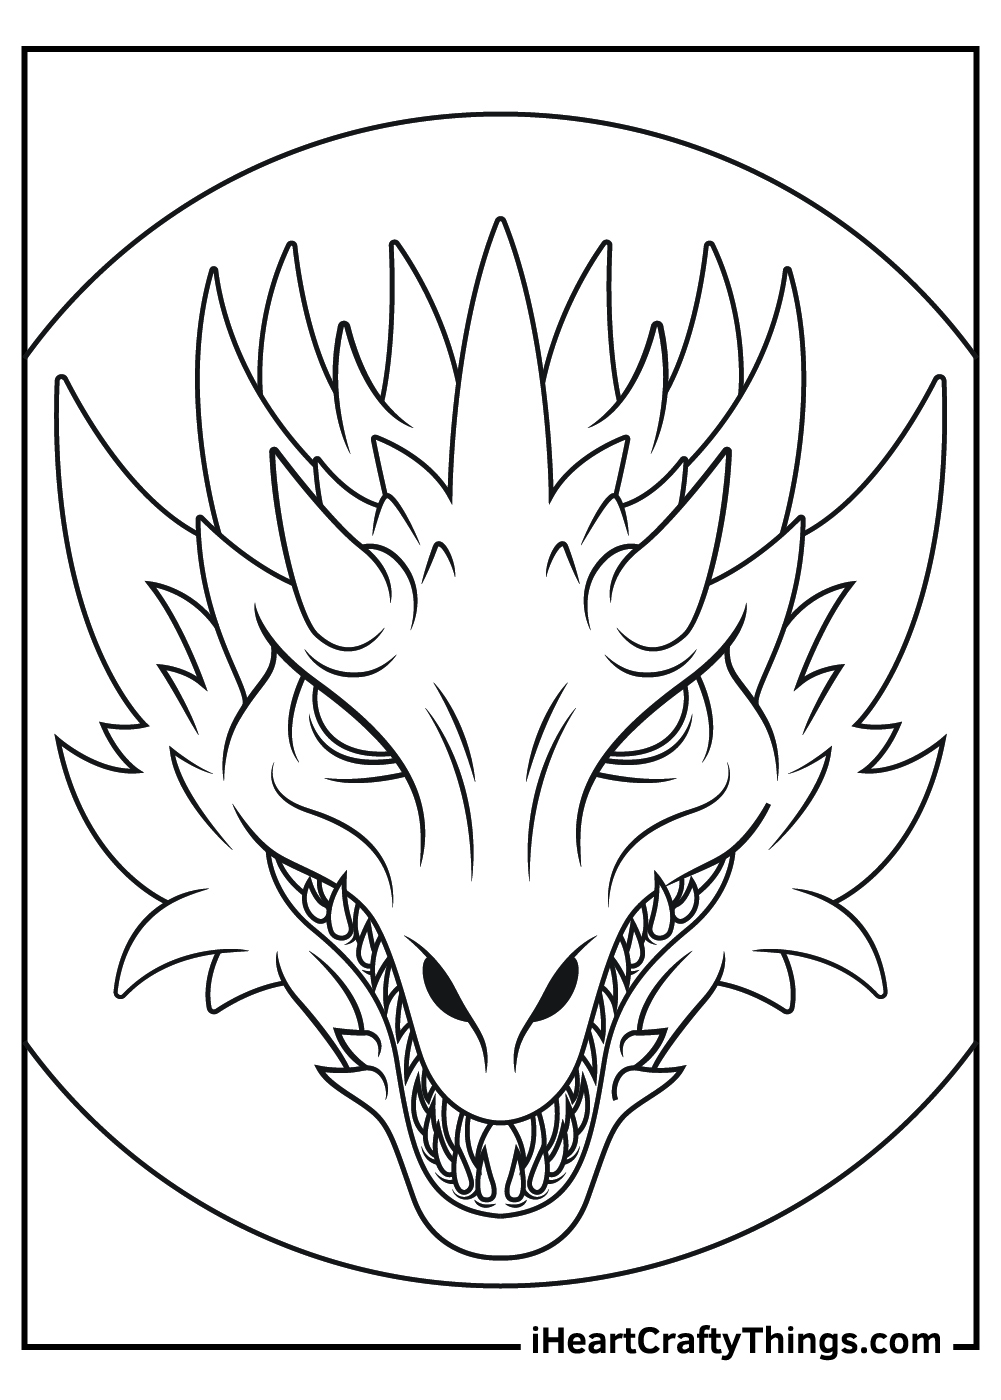 dragon coloring updated vampire homemade halloween cards markers sketch uncle andys toys coloring pages Coloring Page Dragon